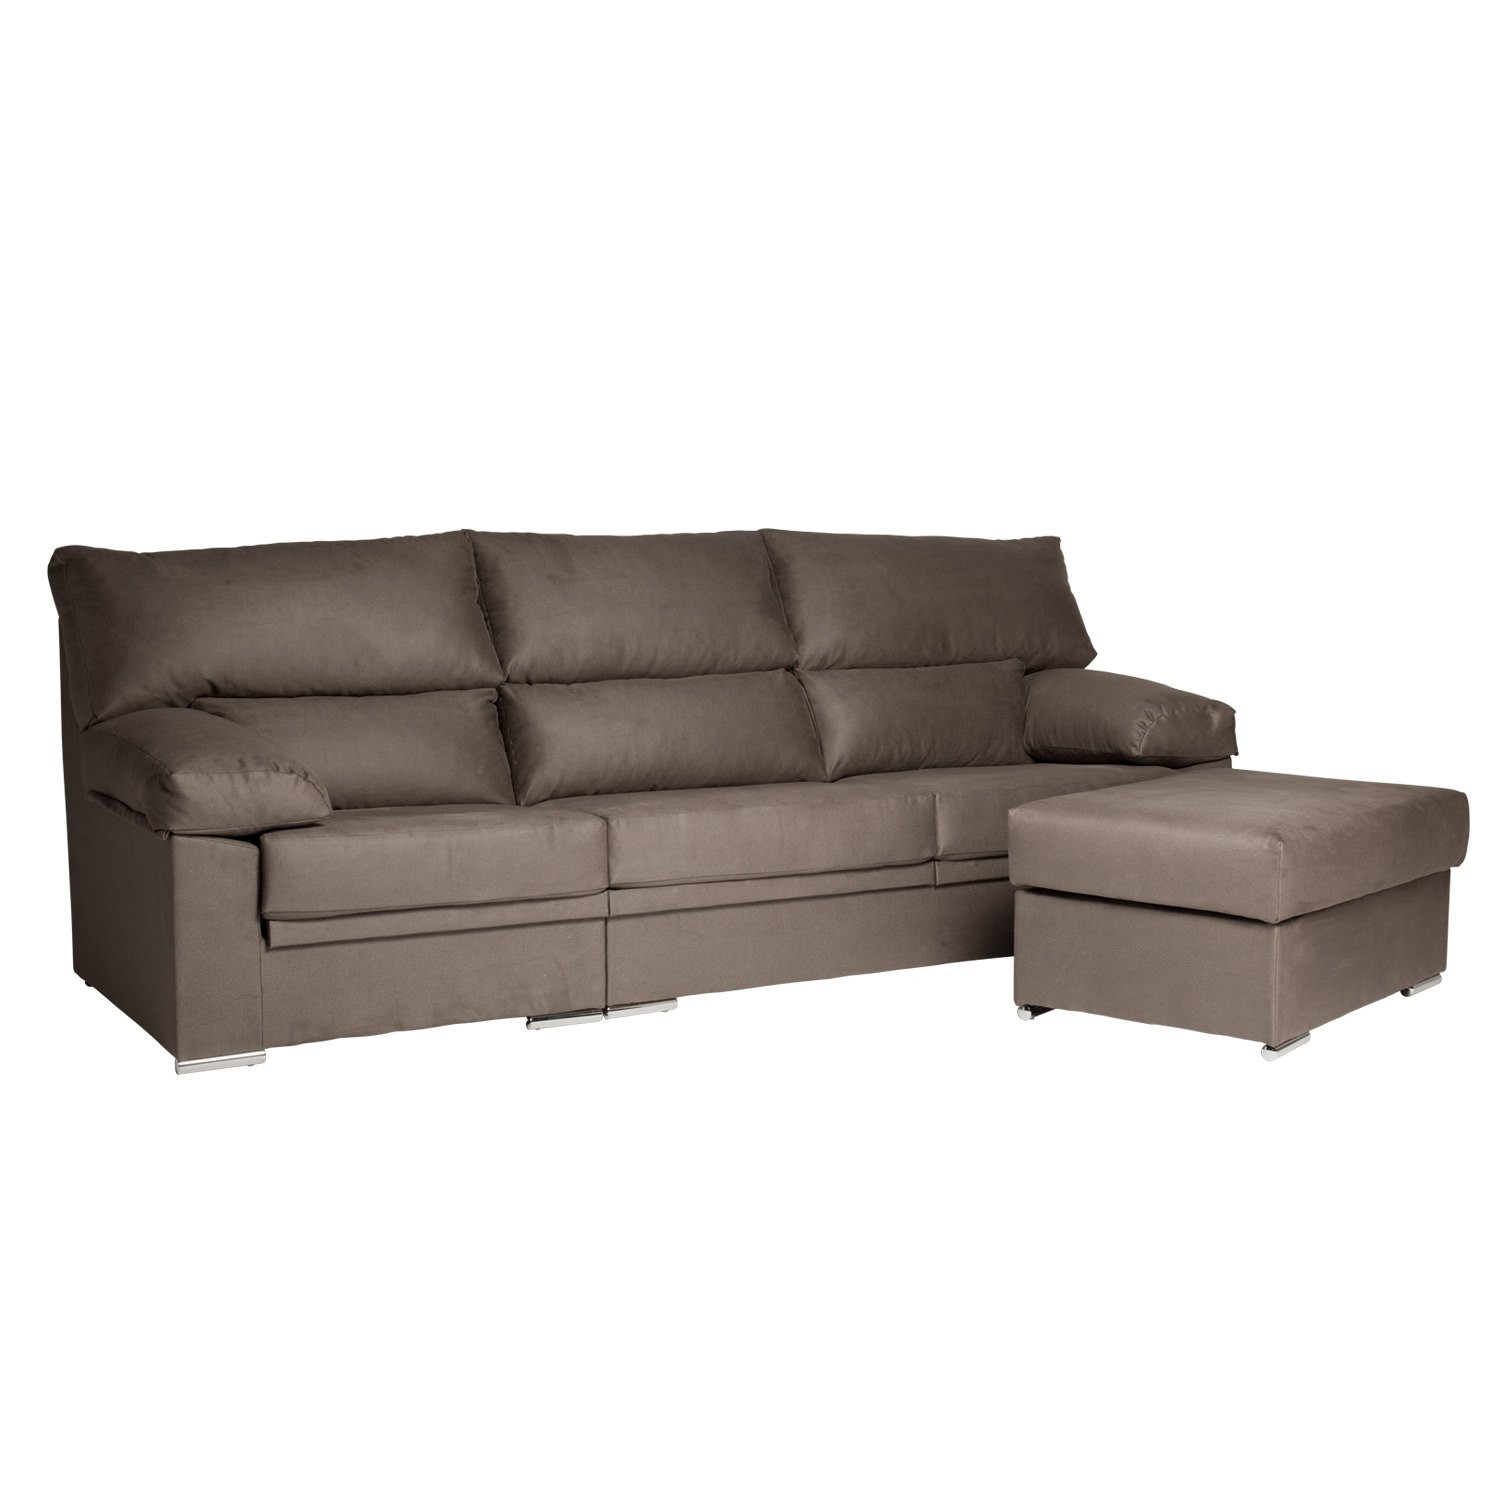 Sofa 3 Plazas Chaise Longue Nuevo sofá 3 Y 2 Plazas Con Chaise Longue Arlés En Oferta Of 37  atractivo sofa 3 Plazas Chaise Longue